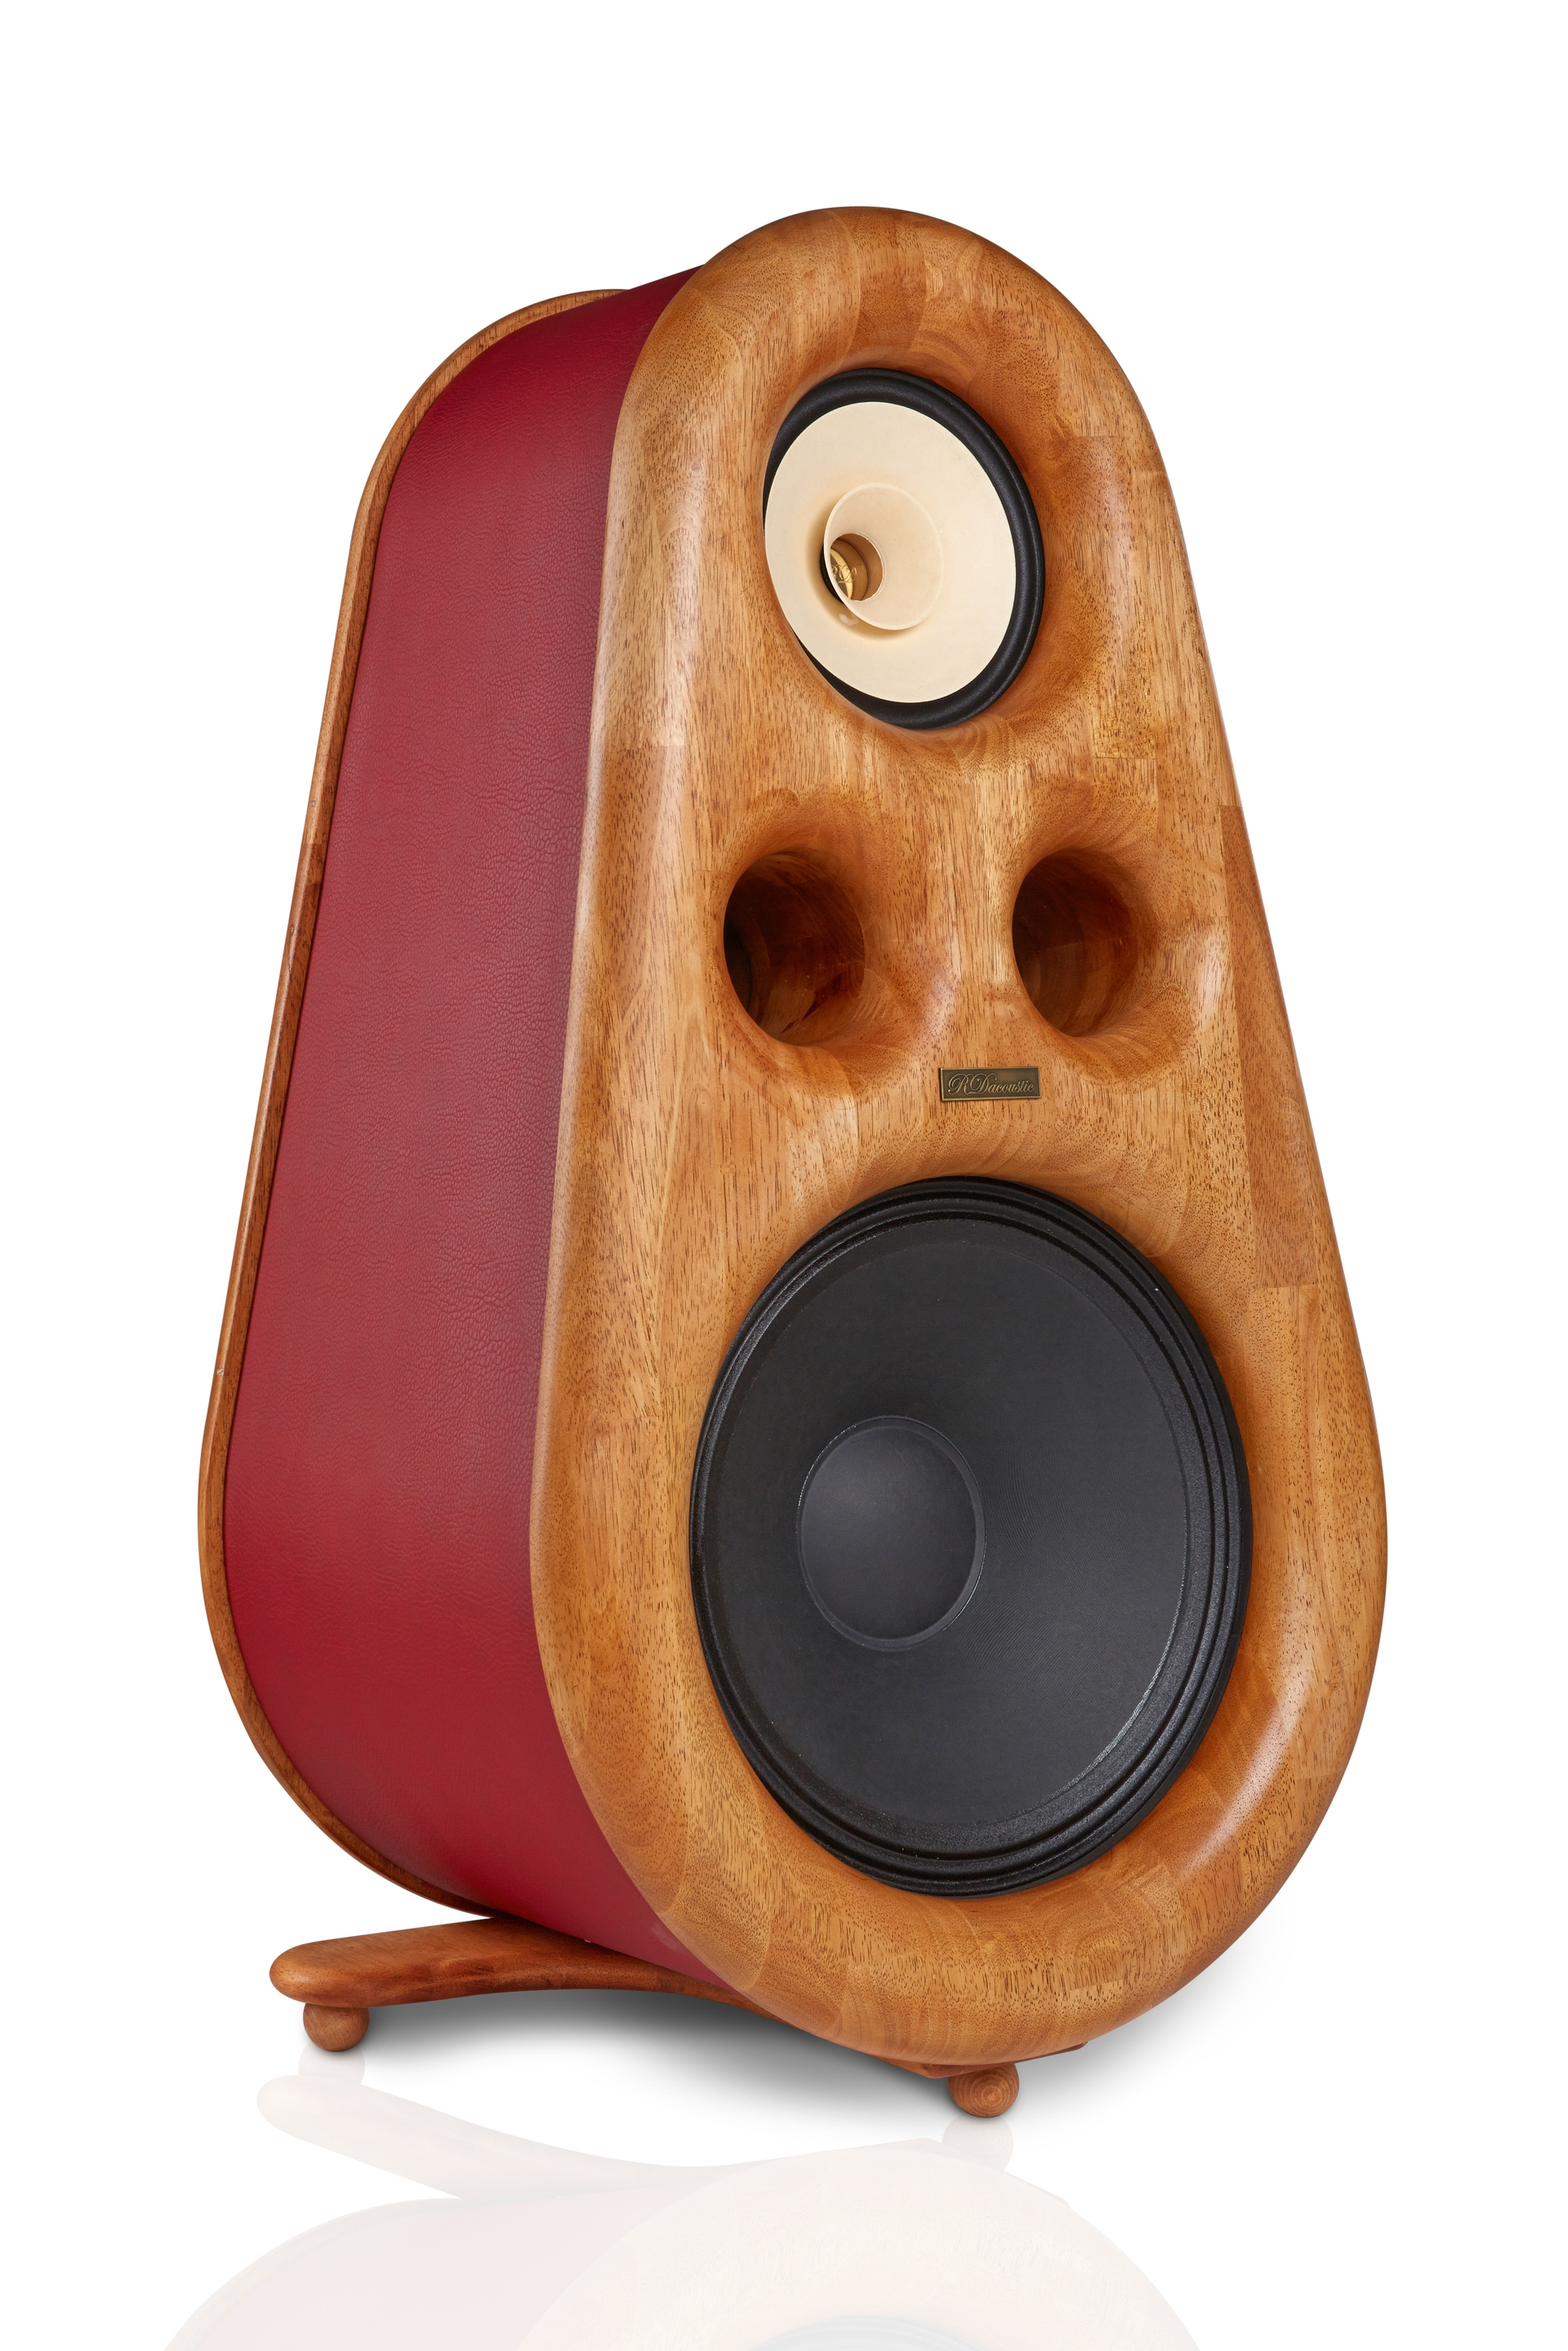 High End speakers Euphoria RDacoustic Stereo 2.0 Surround 7.1, Surround 5.1